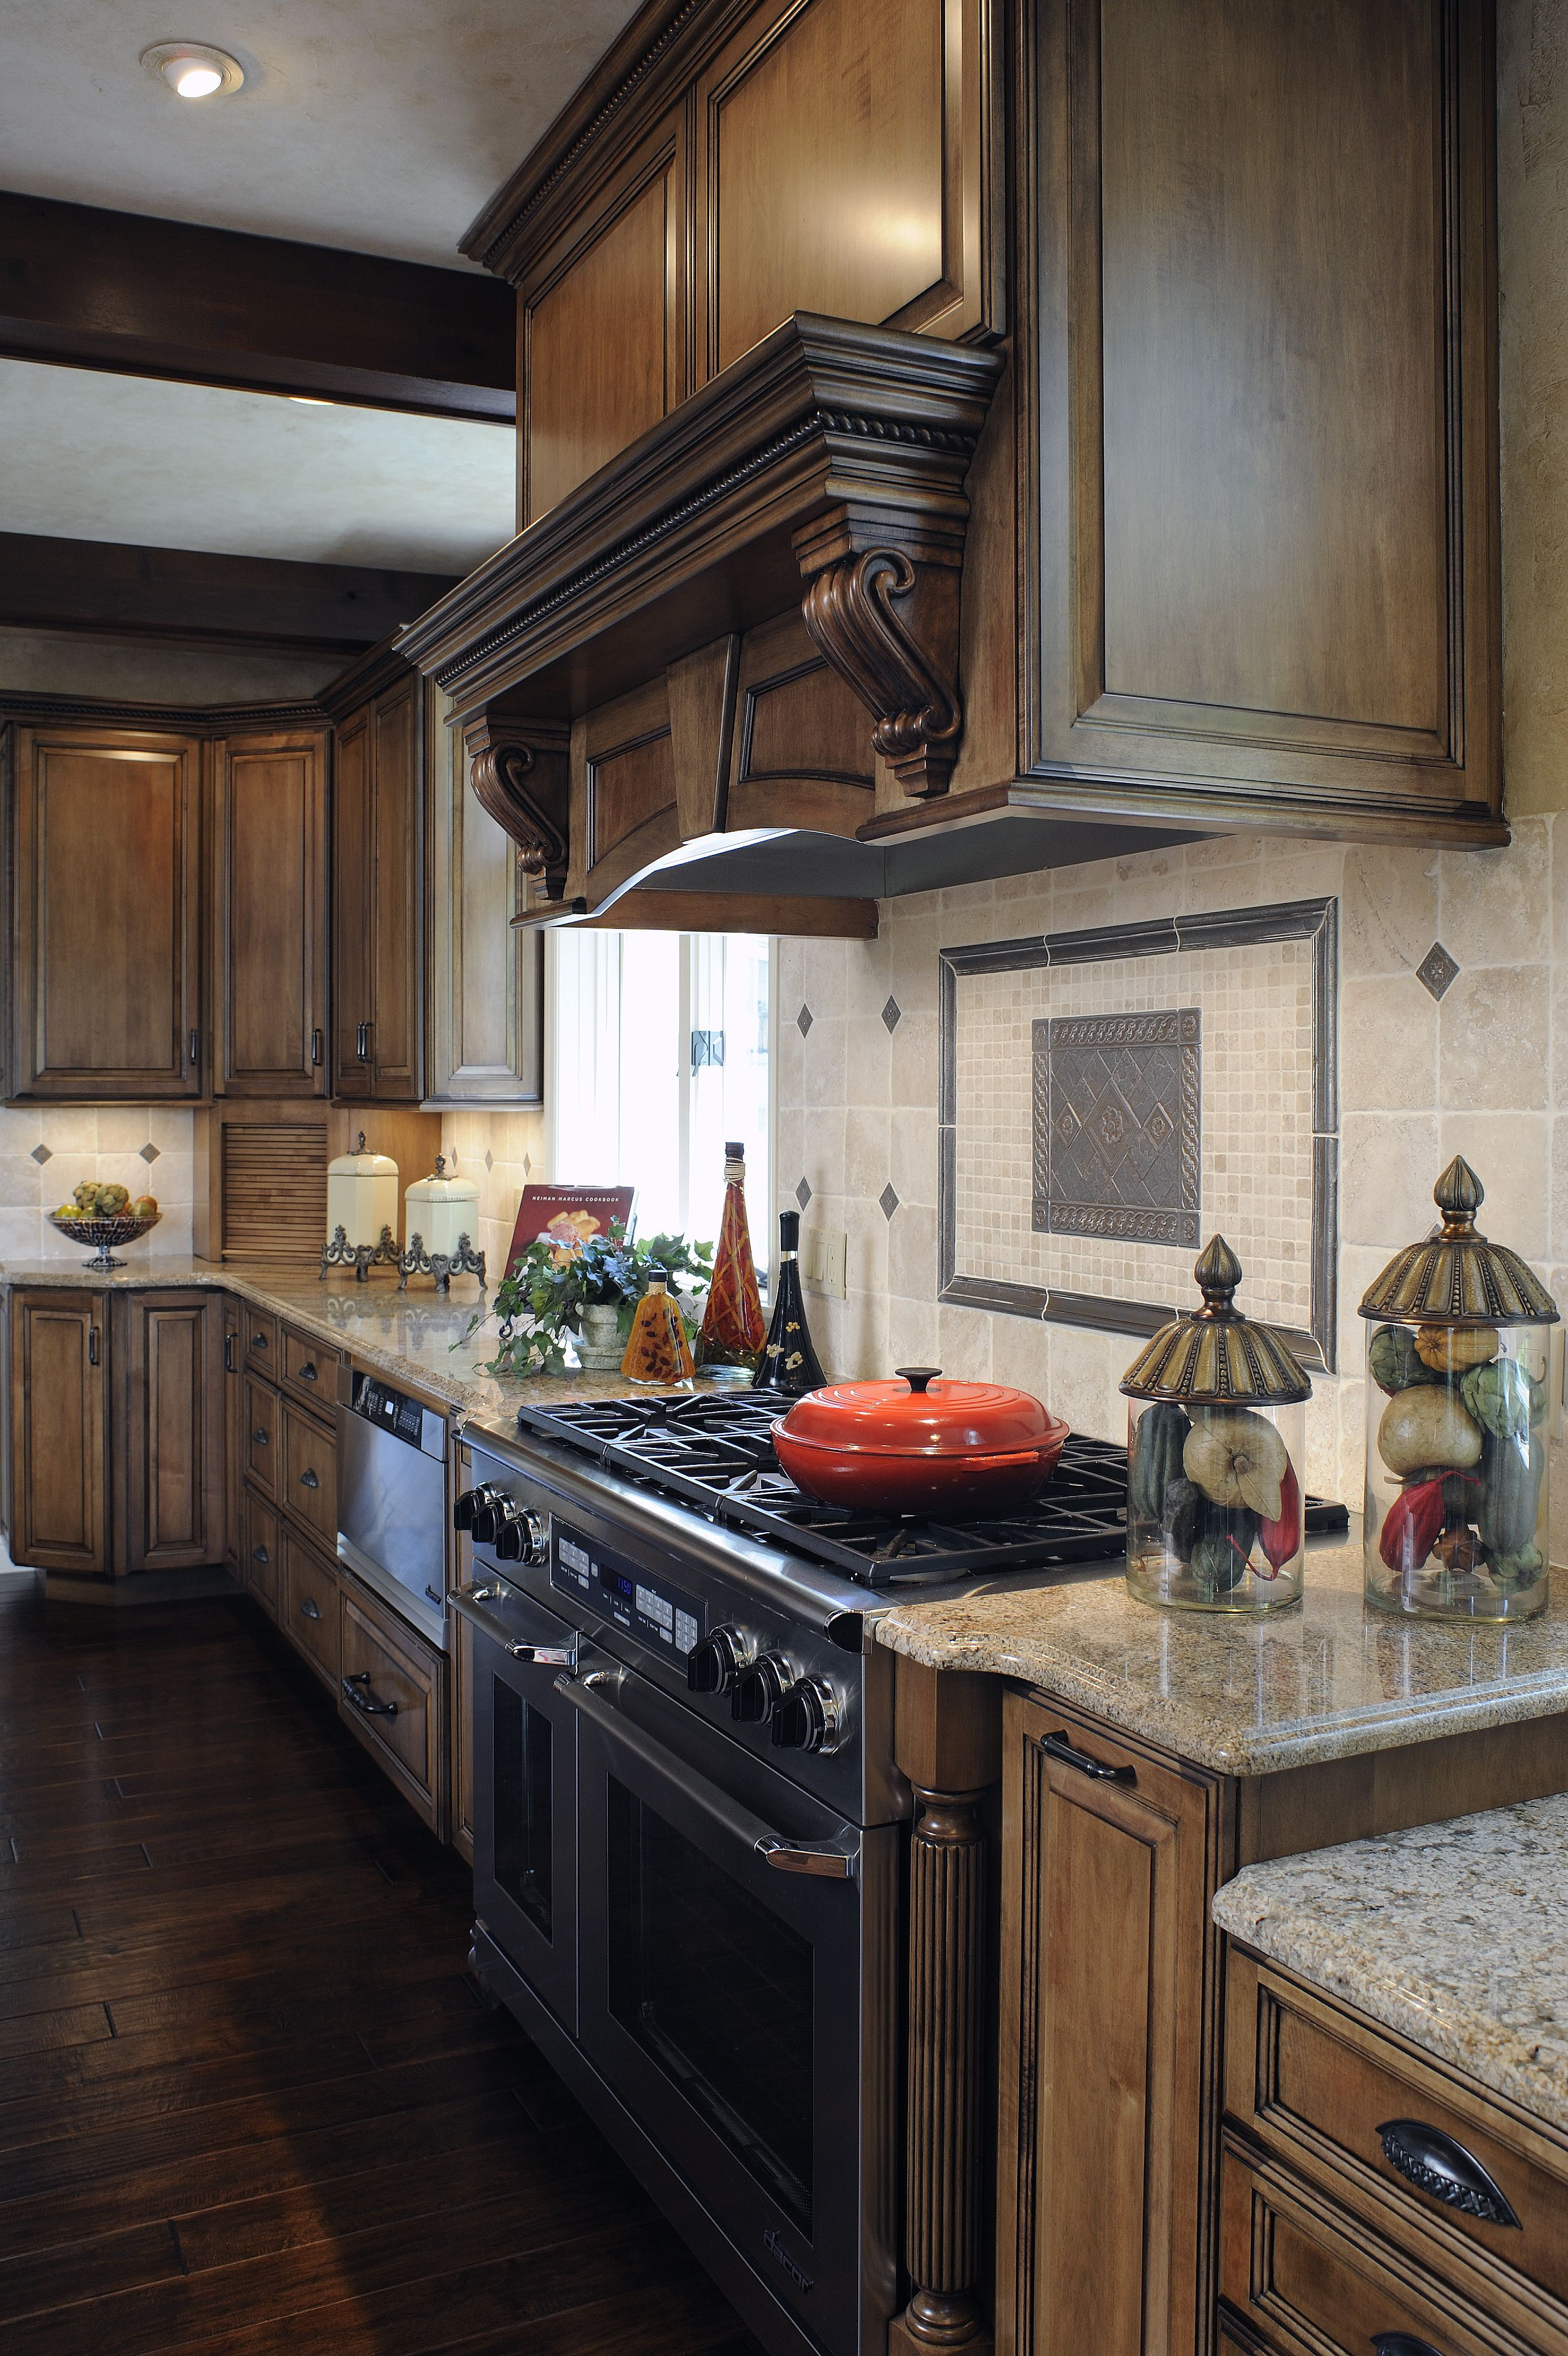 Pin By Jsb Designs On Kitchens Outdoor Kitchen Cabinets Life Kitchen Stone Tiles